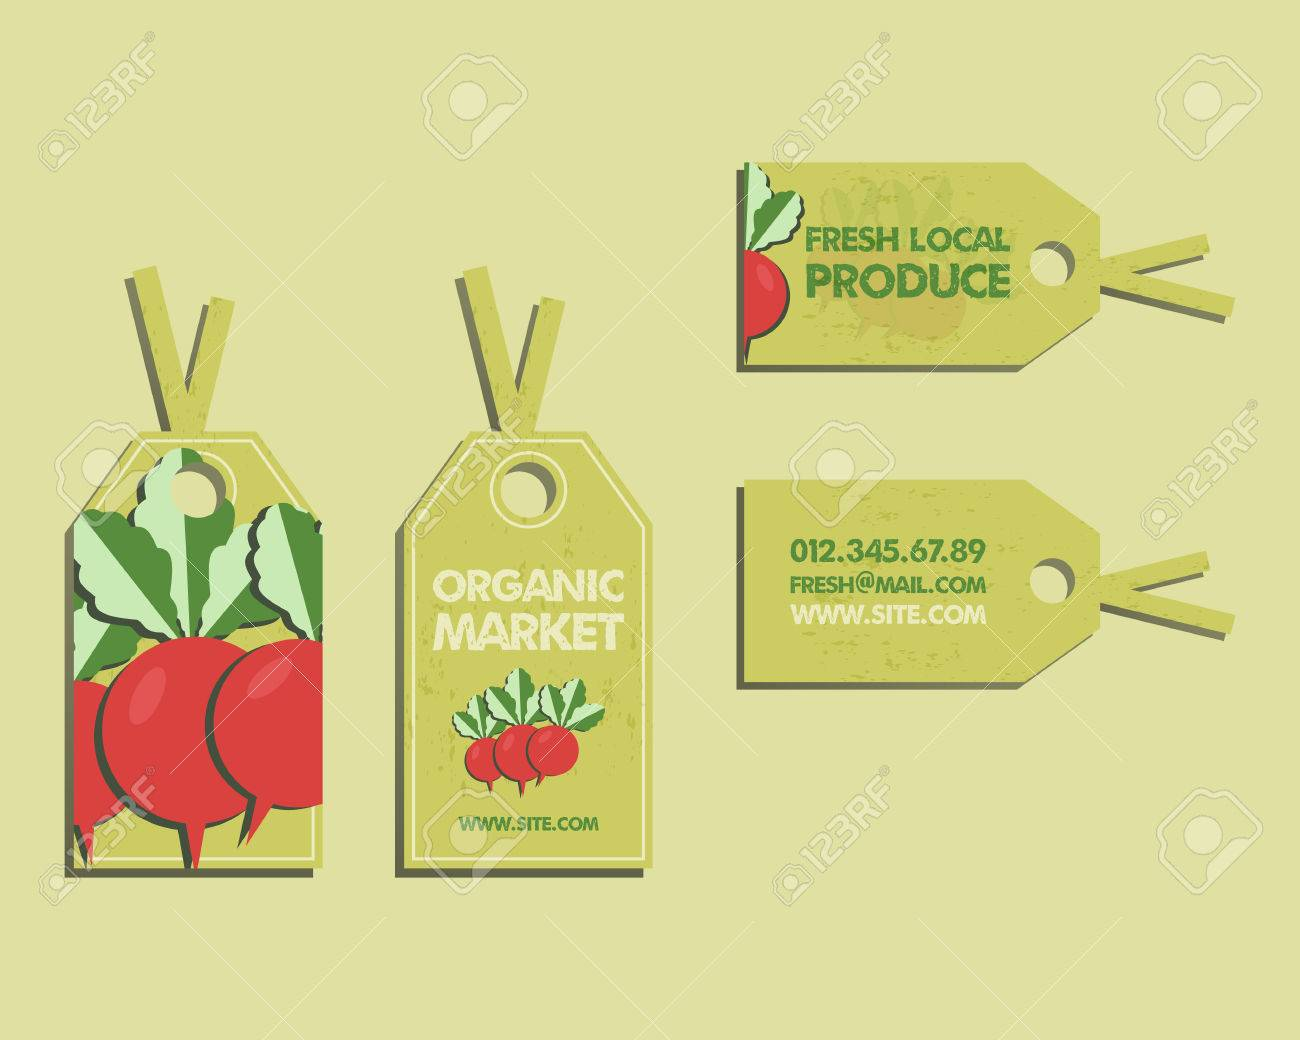 hight resolution of summer farm fresh sticker template or brochure design with radish mock up design with